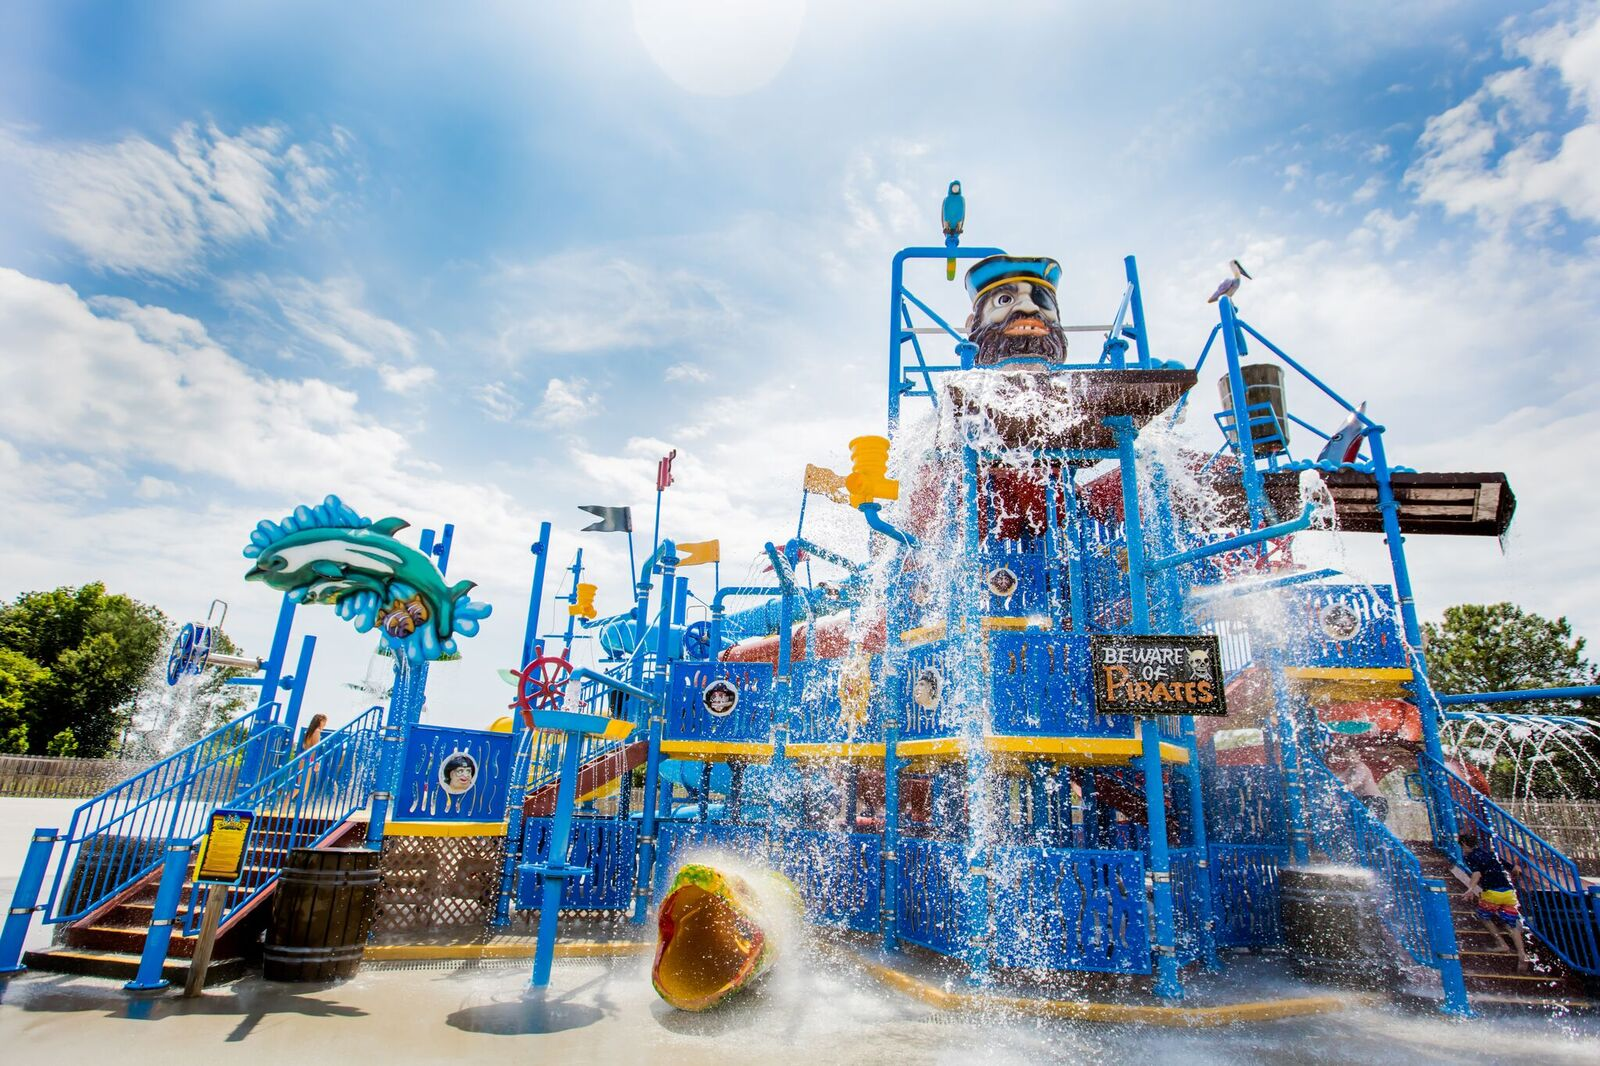 Best Water Play Area in Norcross